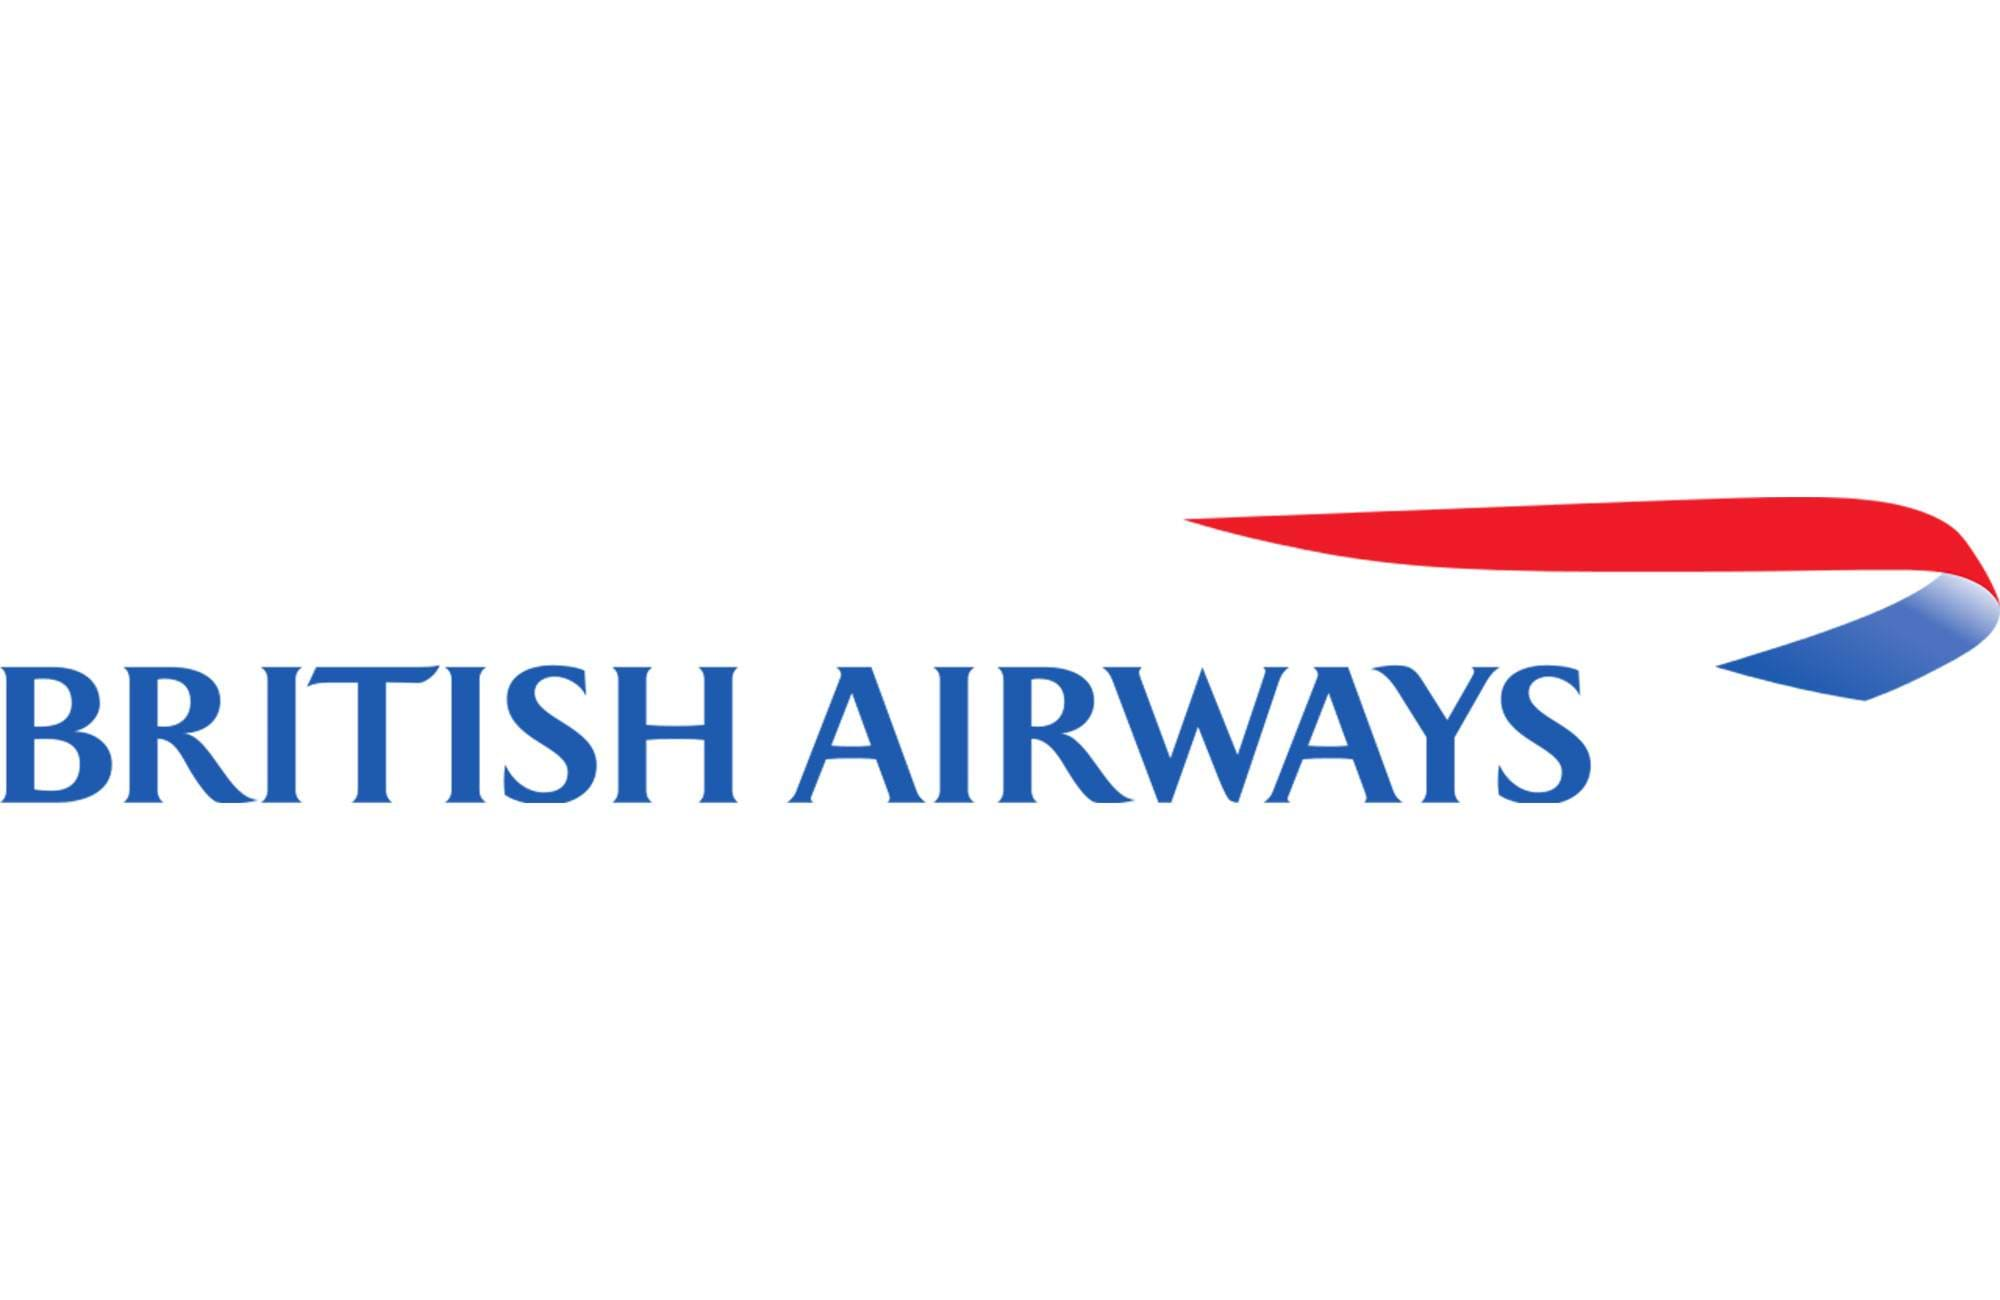 Reis naar Amerika met British Airways